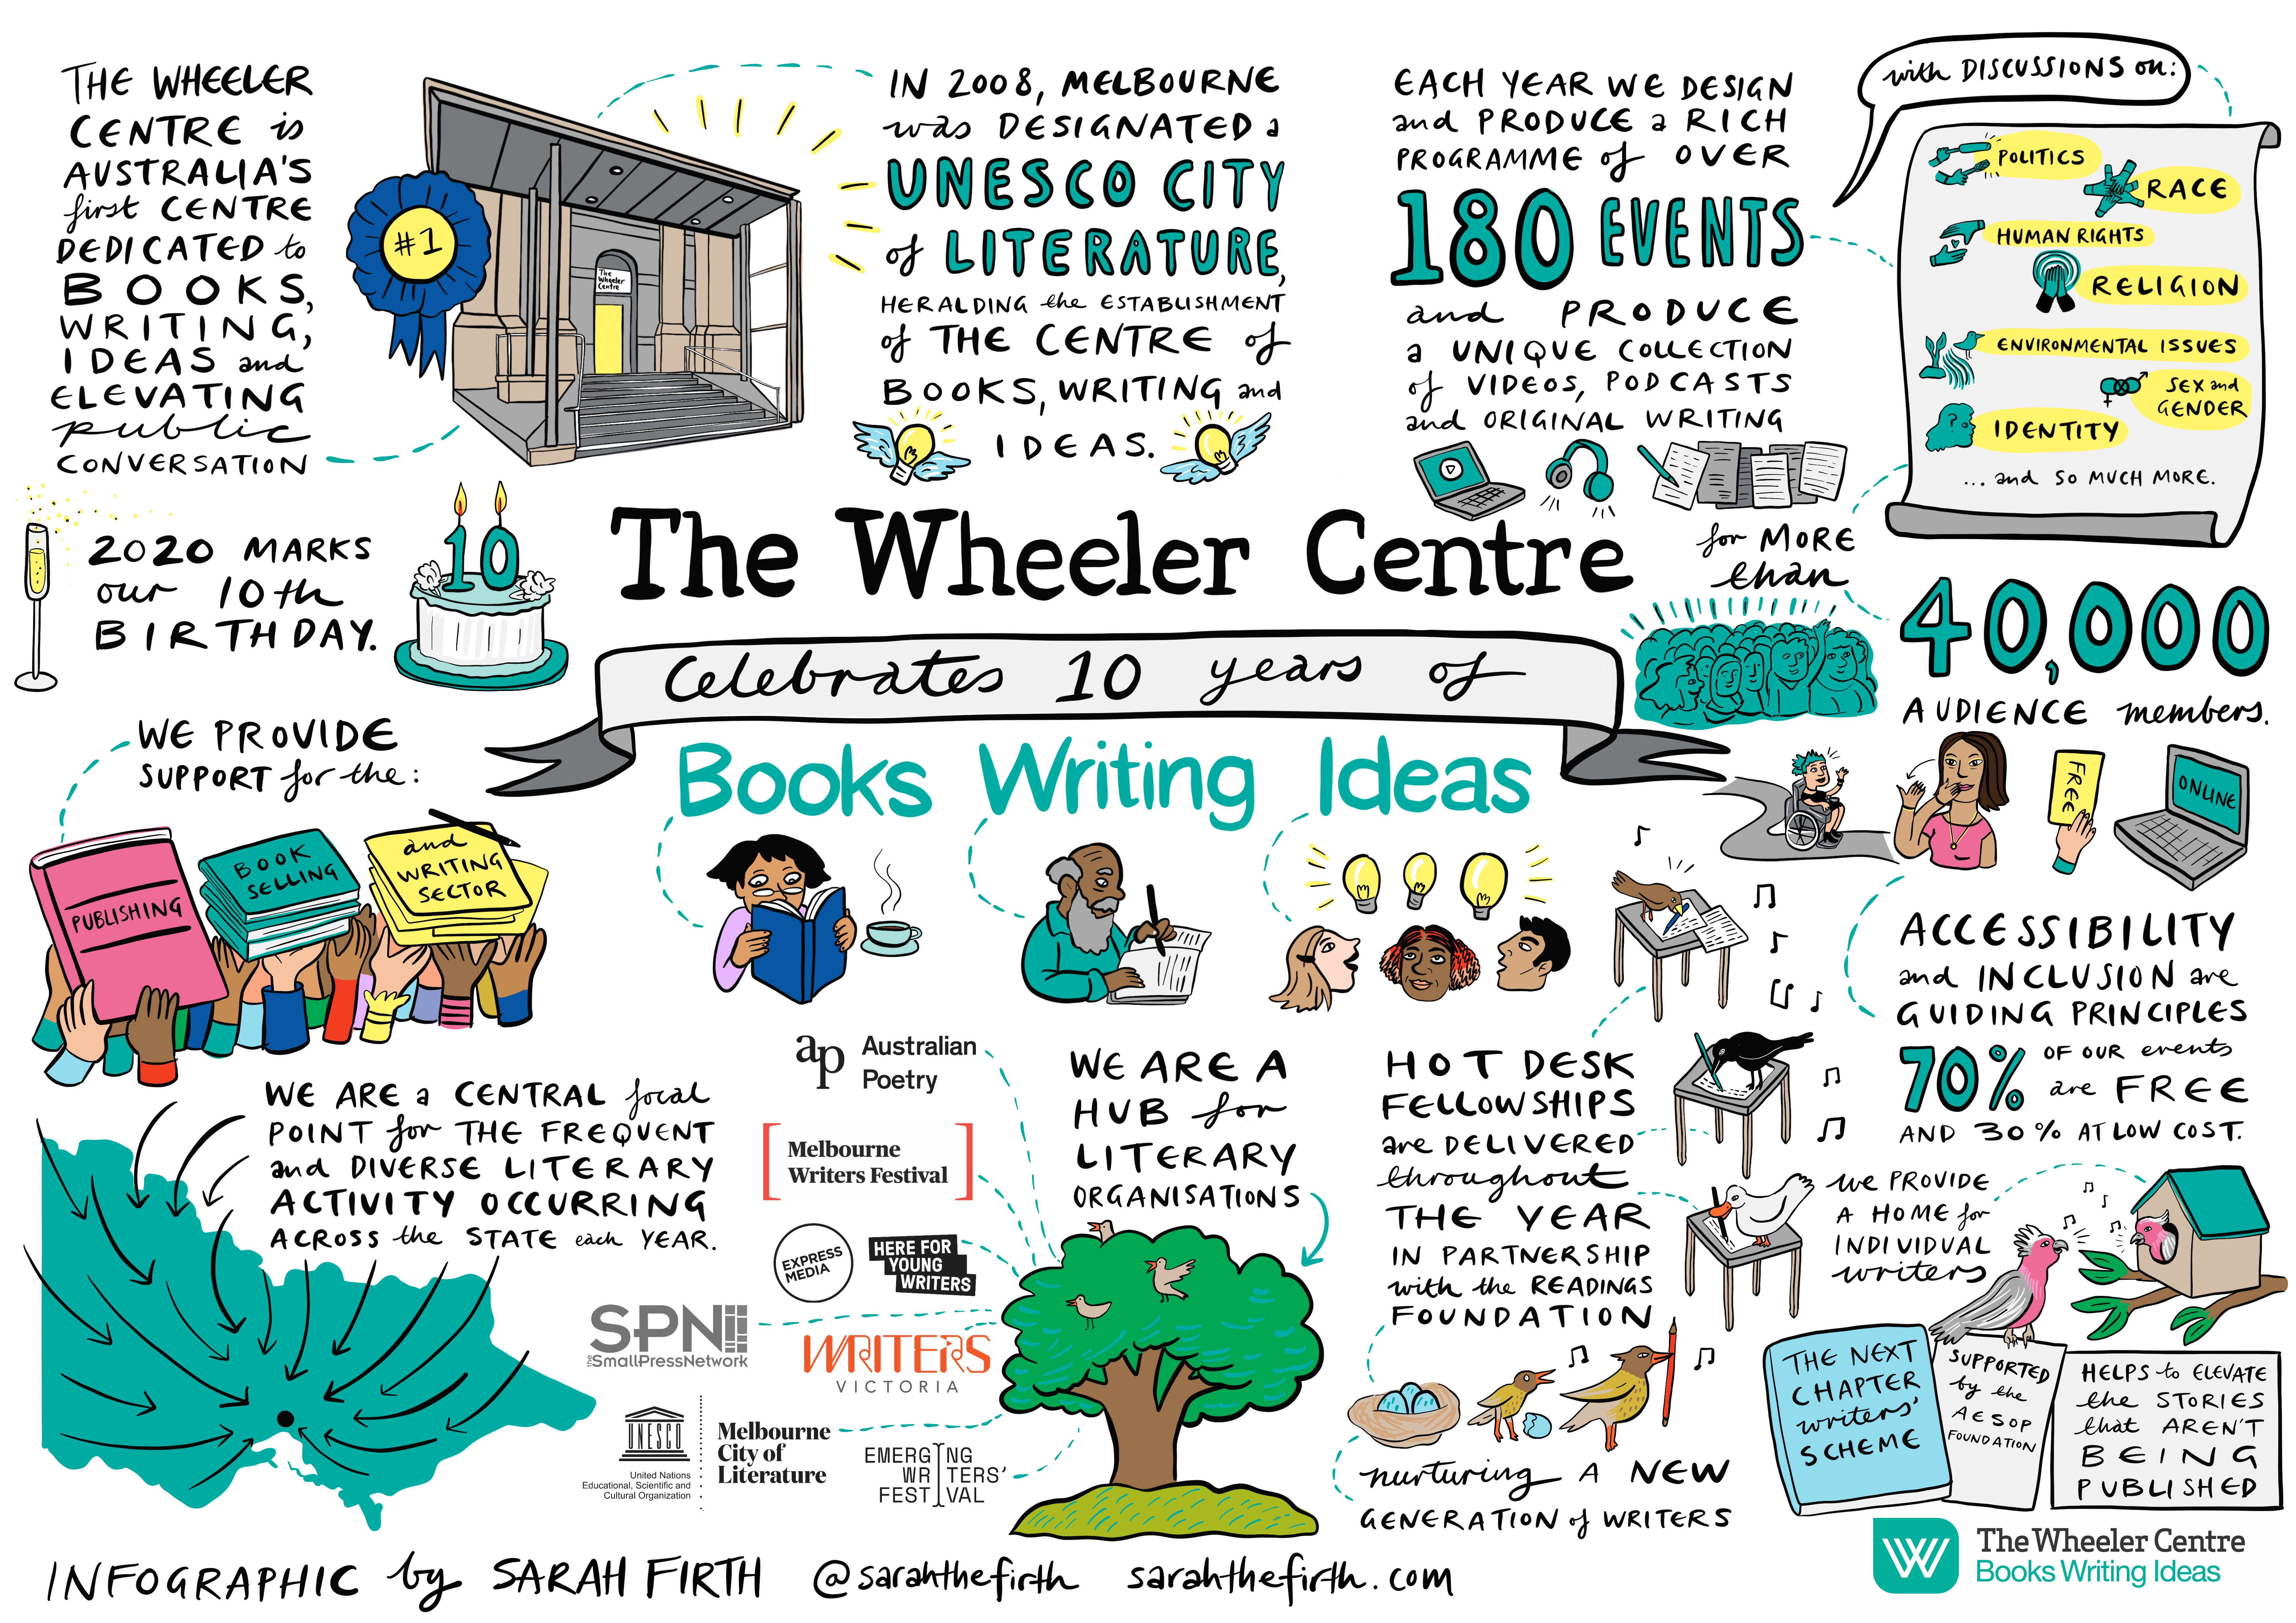 Infographic displaying information about the Wheeler Centre's first ten years